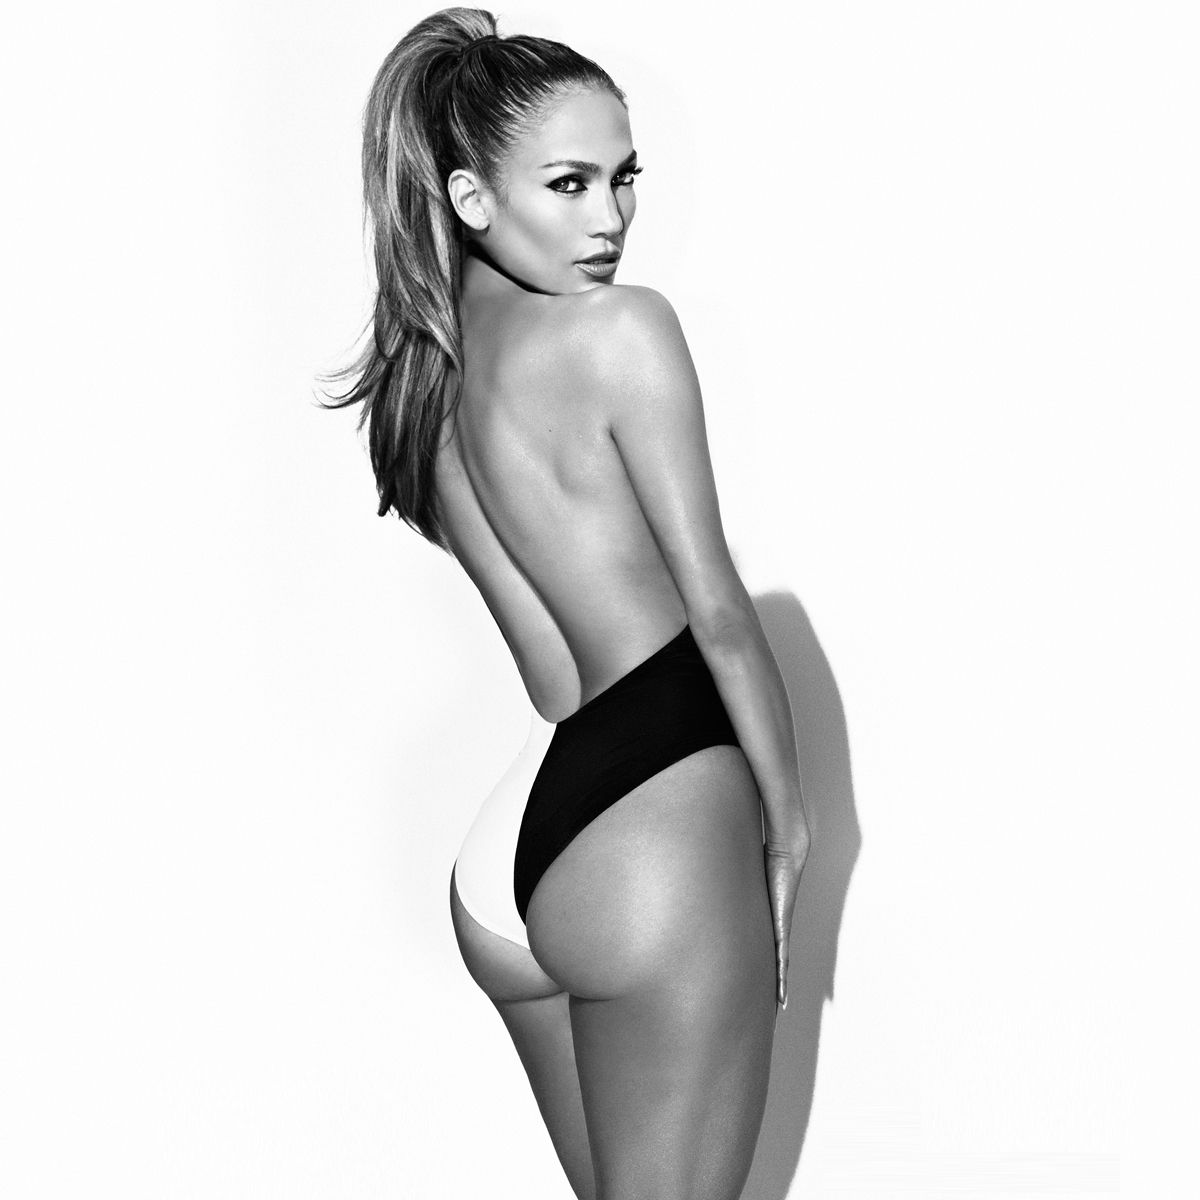 144464eb6b She looks amazing! Mom of twins and in great shape. Definitely inspiring!  Home - Jennifer Lopez